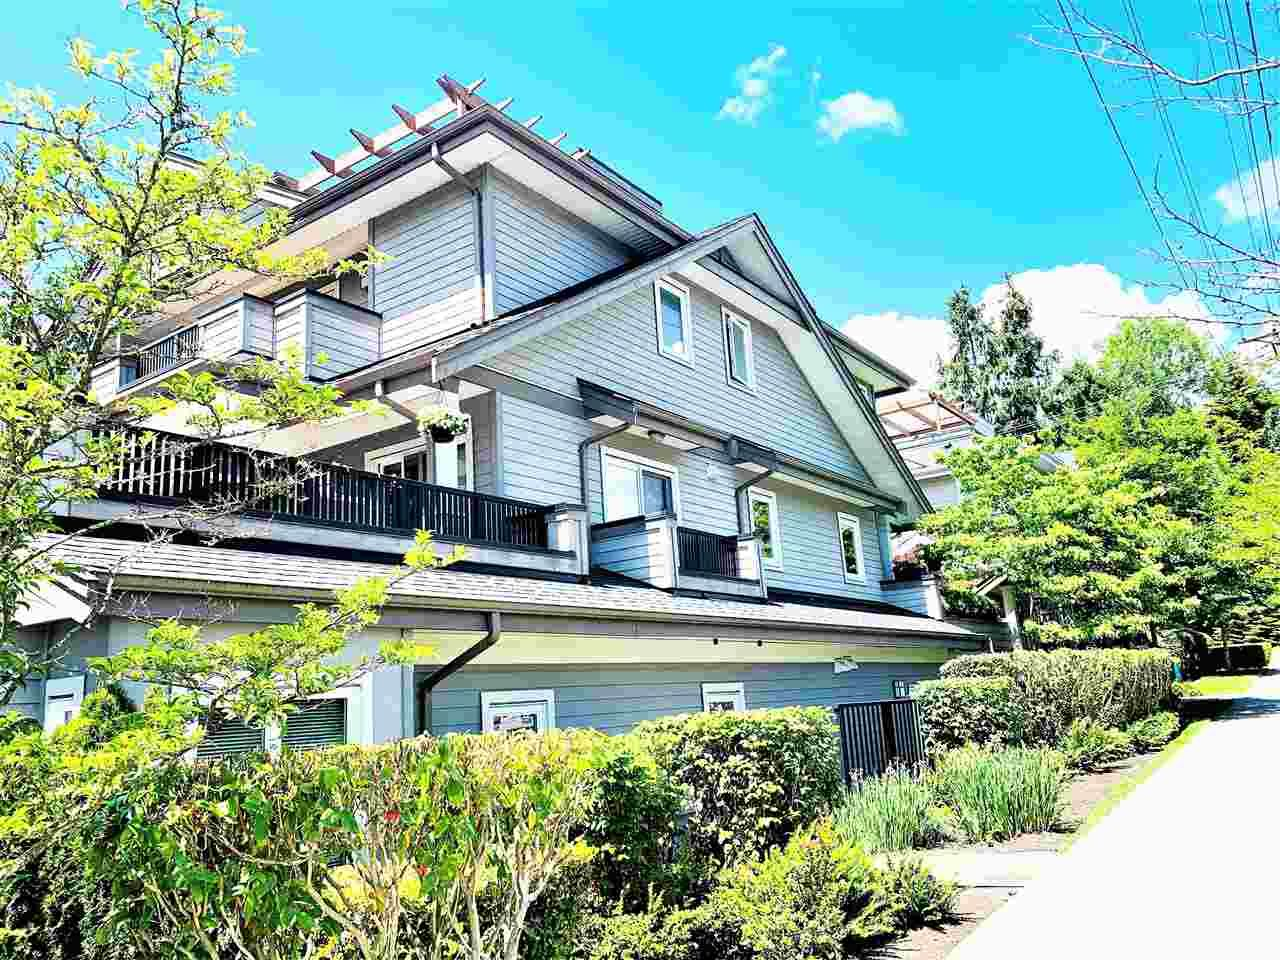 """Main Photo: 1119 ST. ANDREWS Avenue in North Vancouver: Central Lonsdale Townhouse for sale in """"St.Andres Gardens"""" : MLS®# R2591392"""